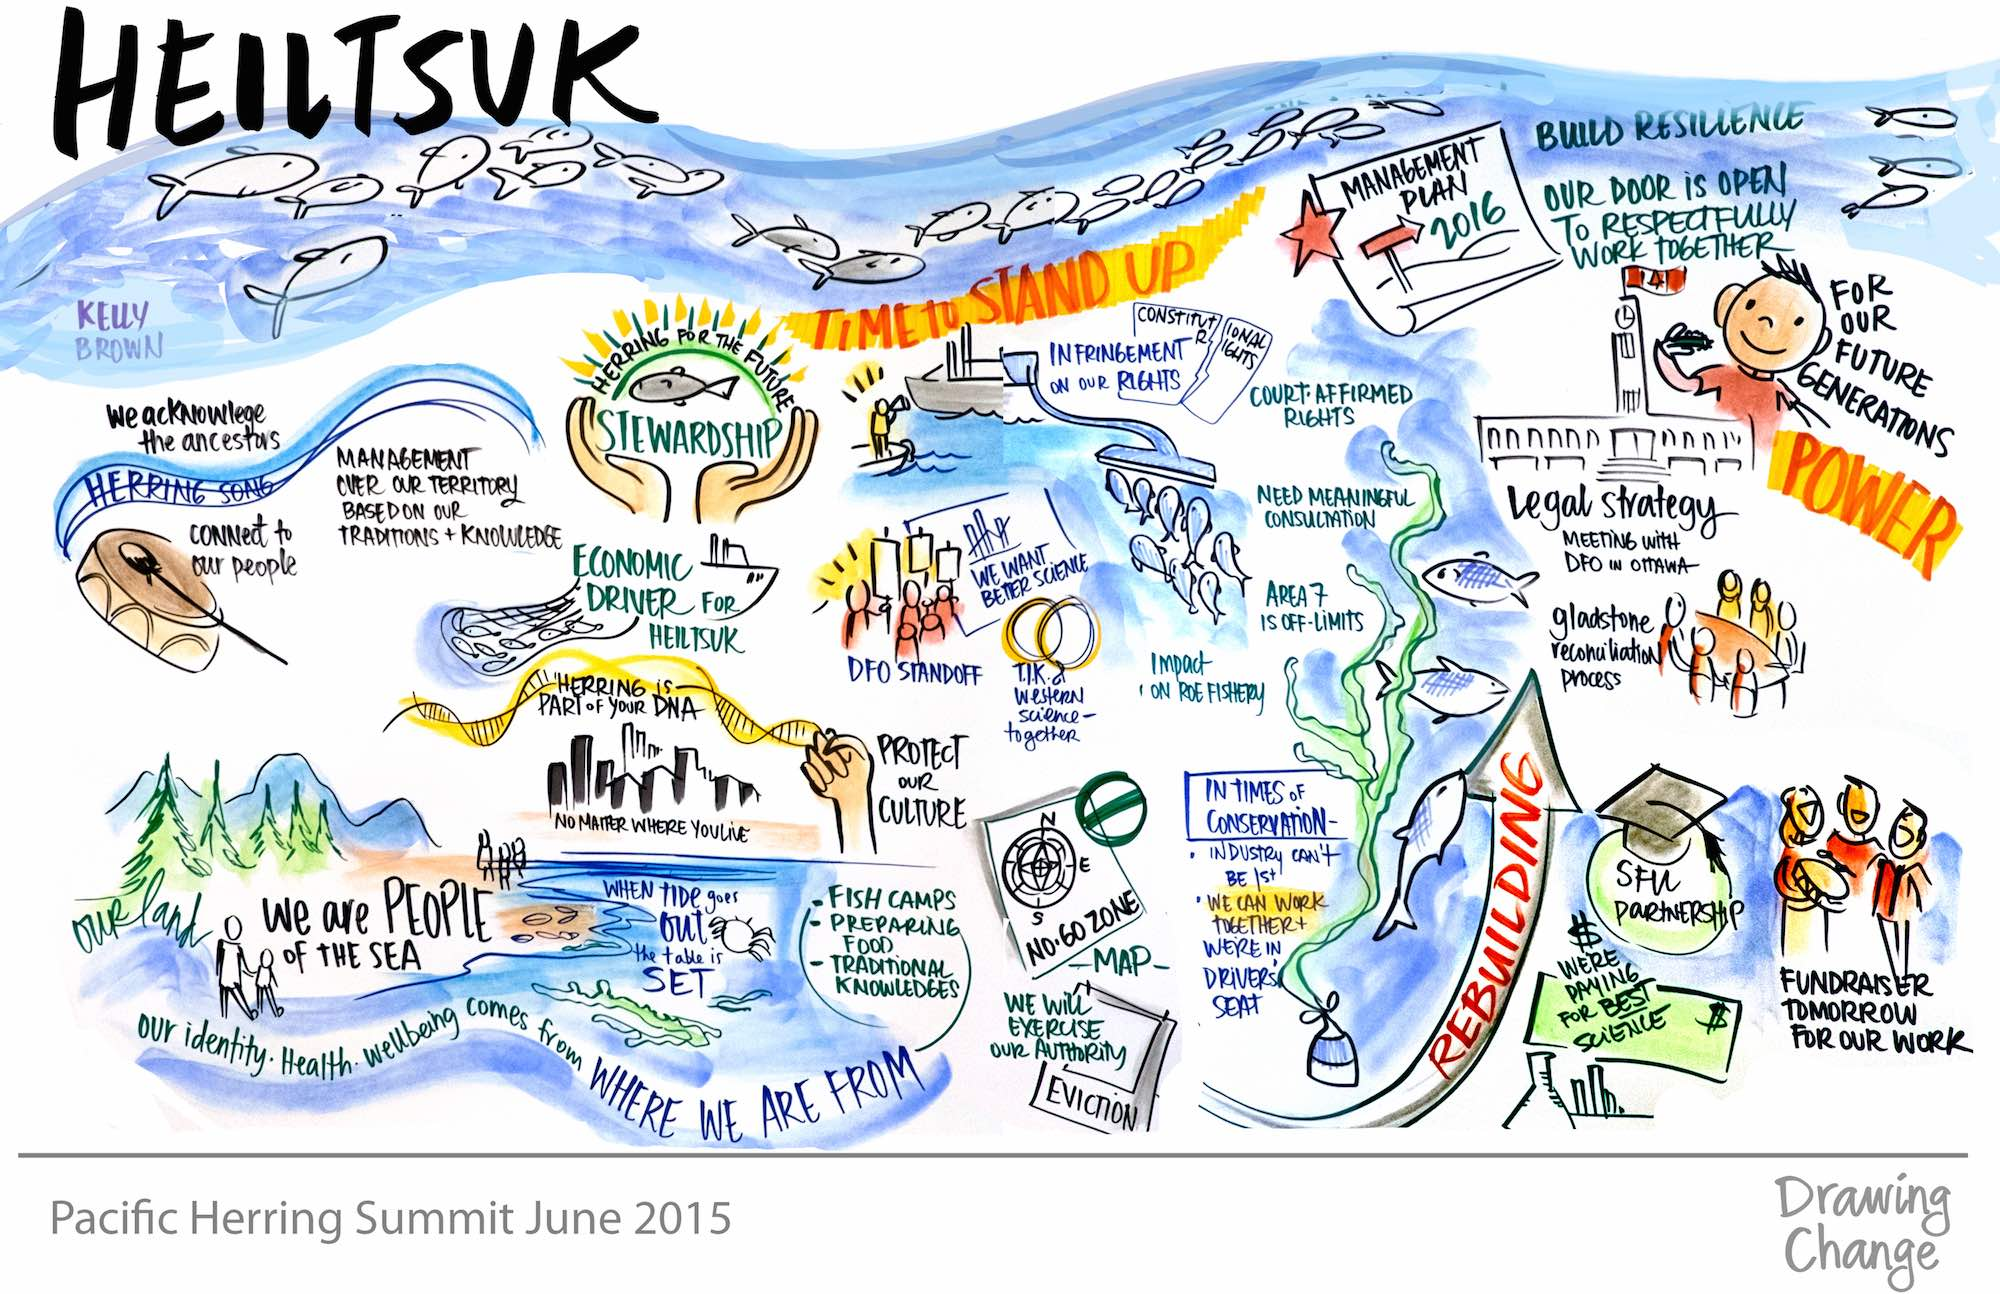 Pacific Herring Summit Heiltsuk graphic recording